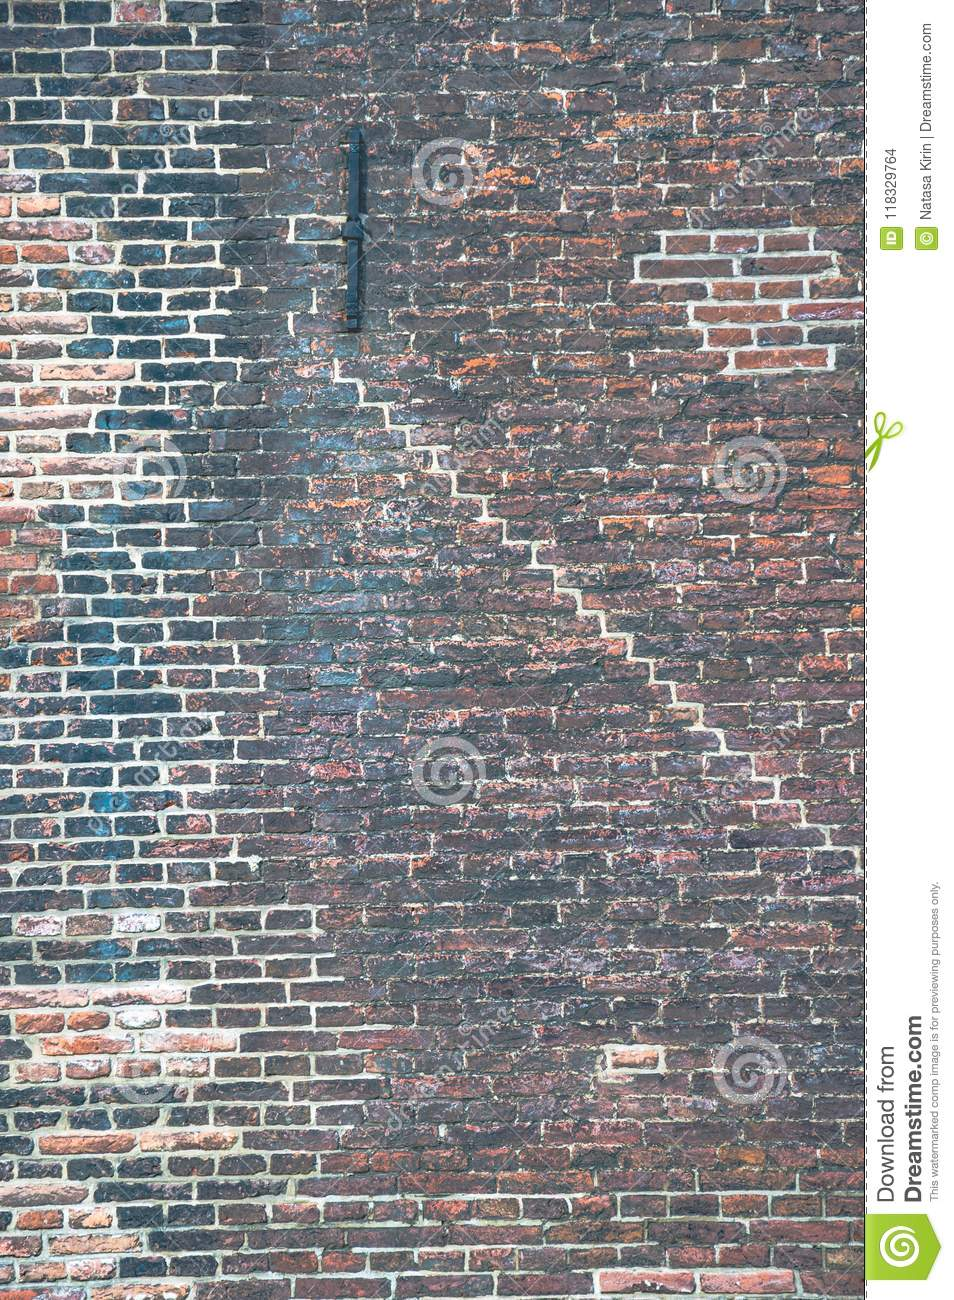 Brick wall with many layers of old paint and different patterns